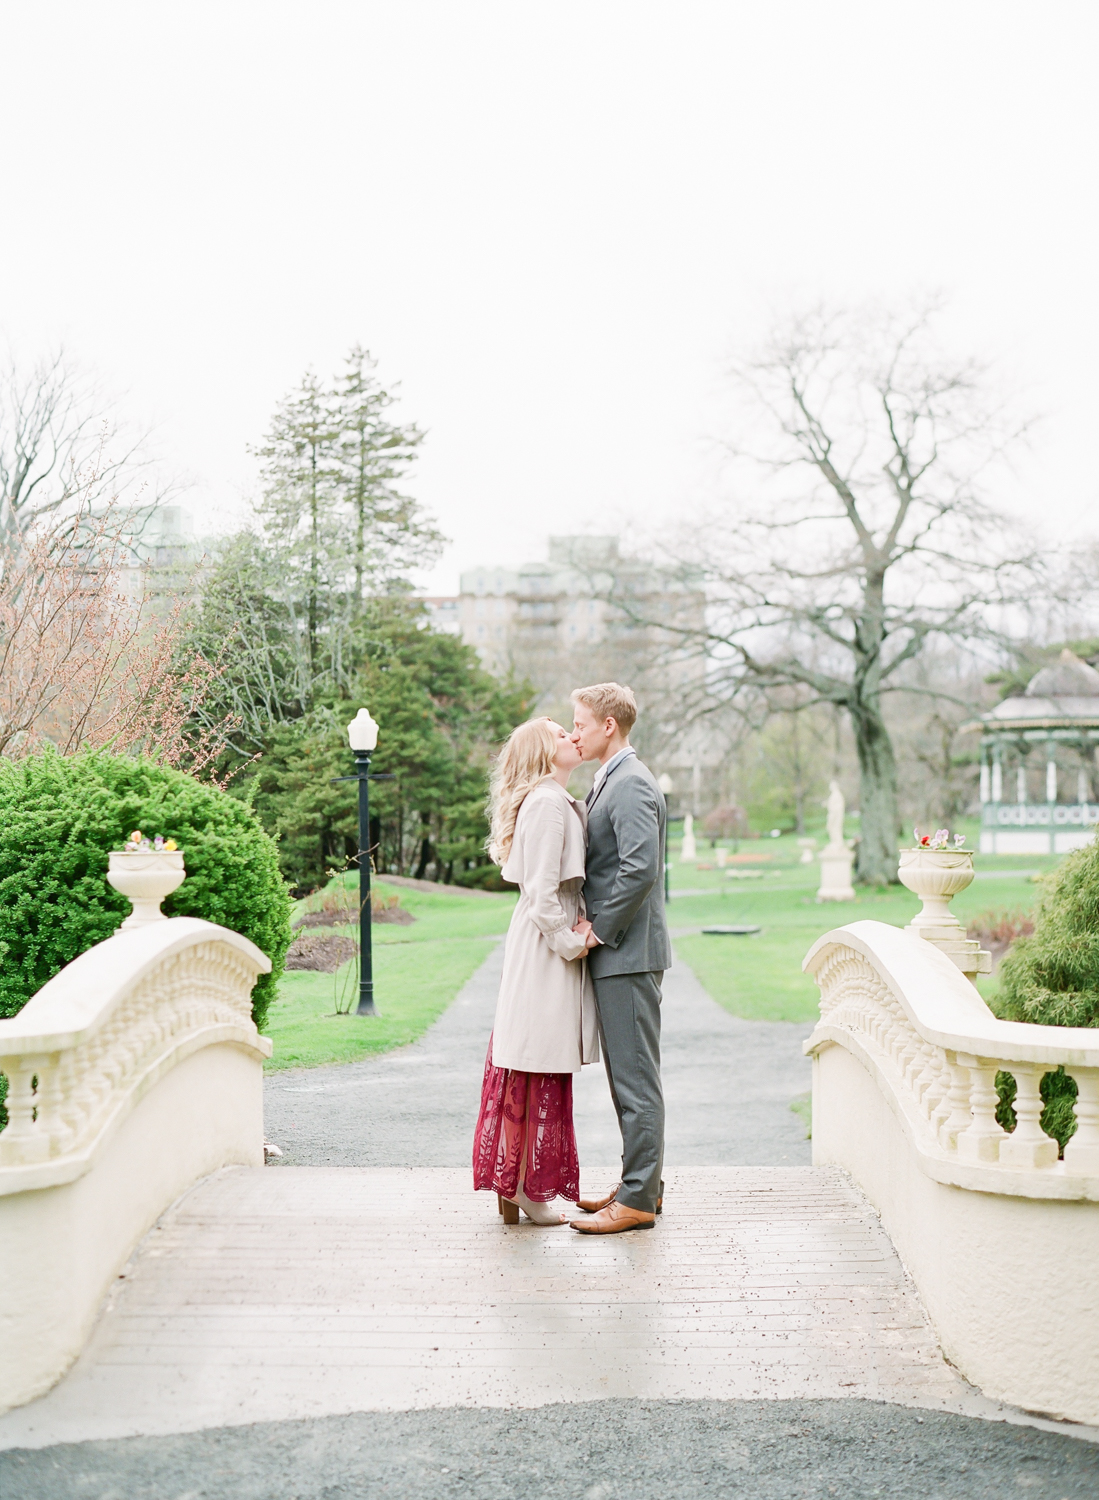 Jacqueline Anne Photography - Amanda and Brent-39.jpg